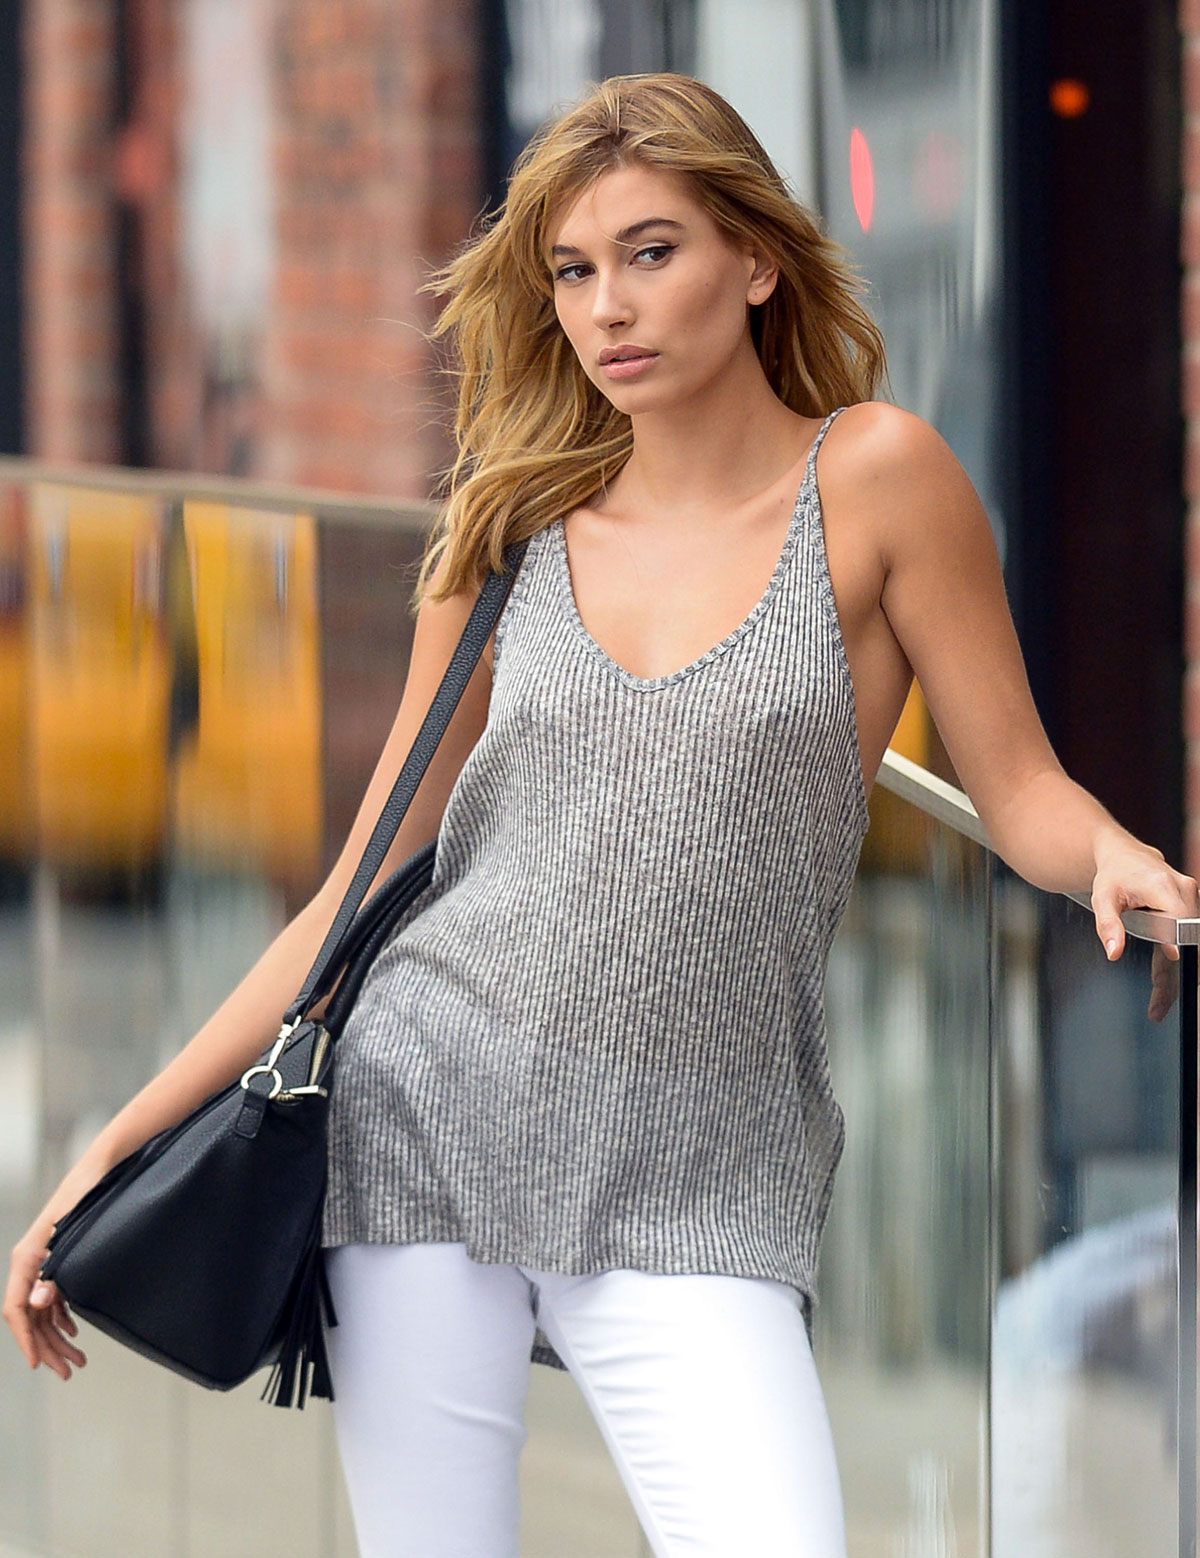 hailey baldwin - photo #3